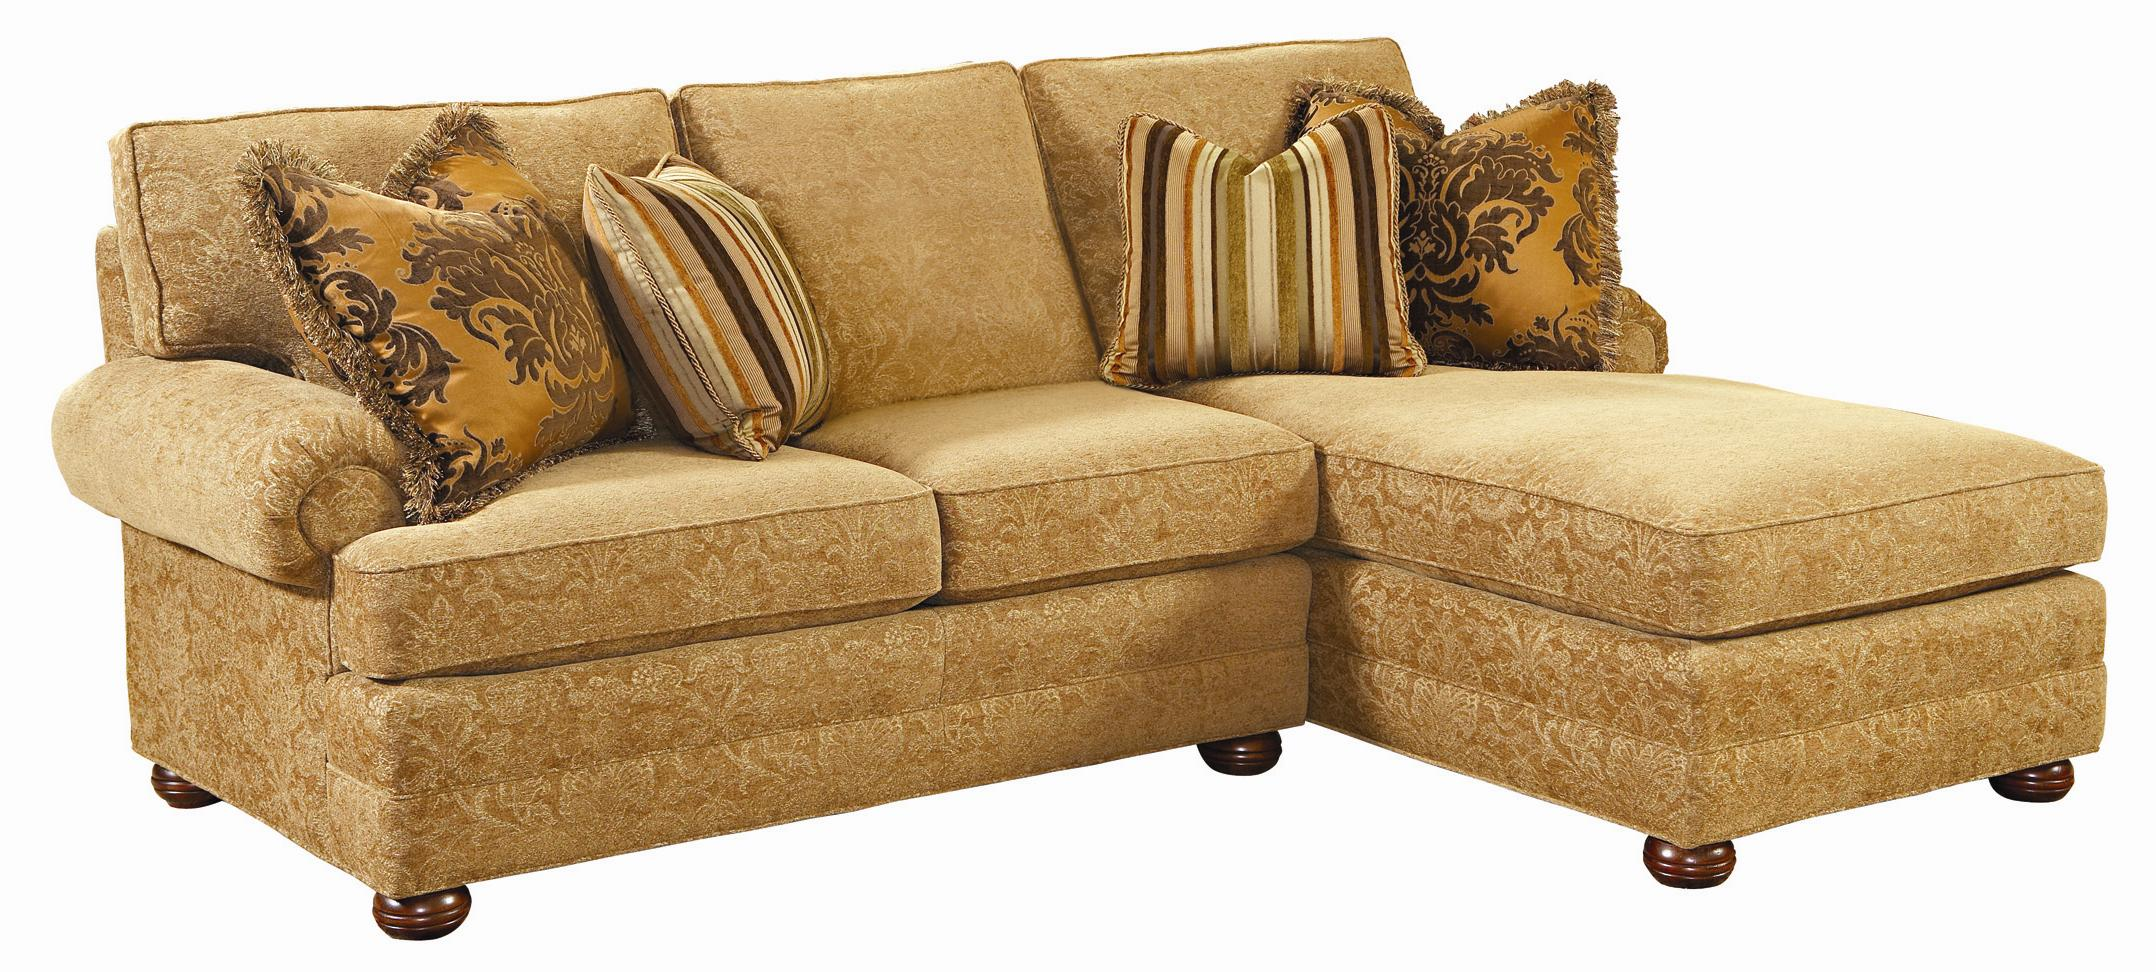 Lexington Personal Design Series Customizable 2 Piece Overland Sectional Baer 39 S Furniture